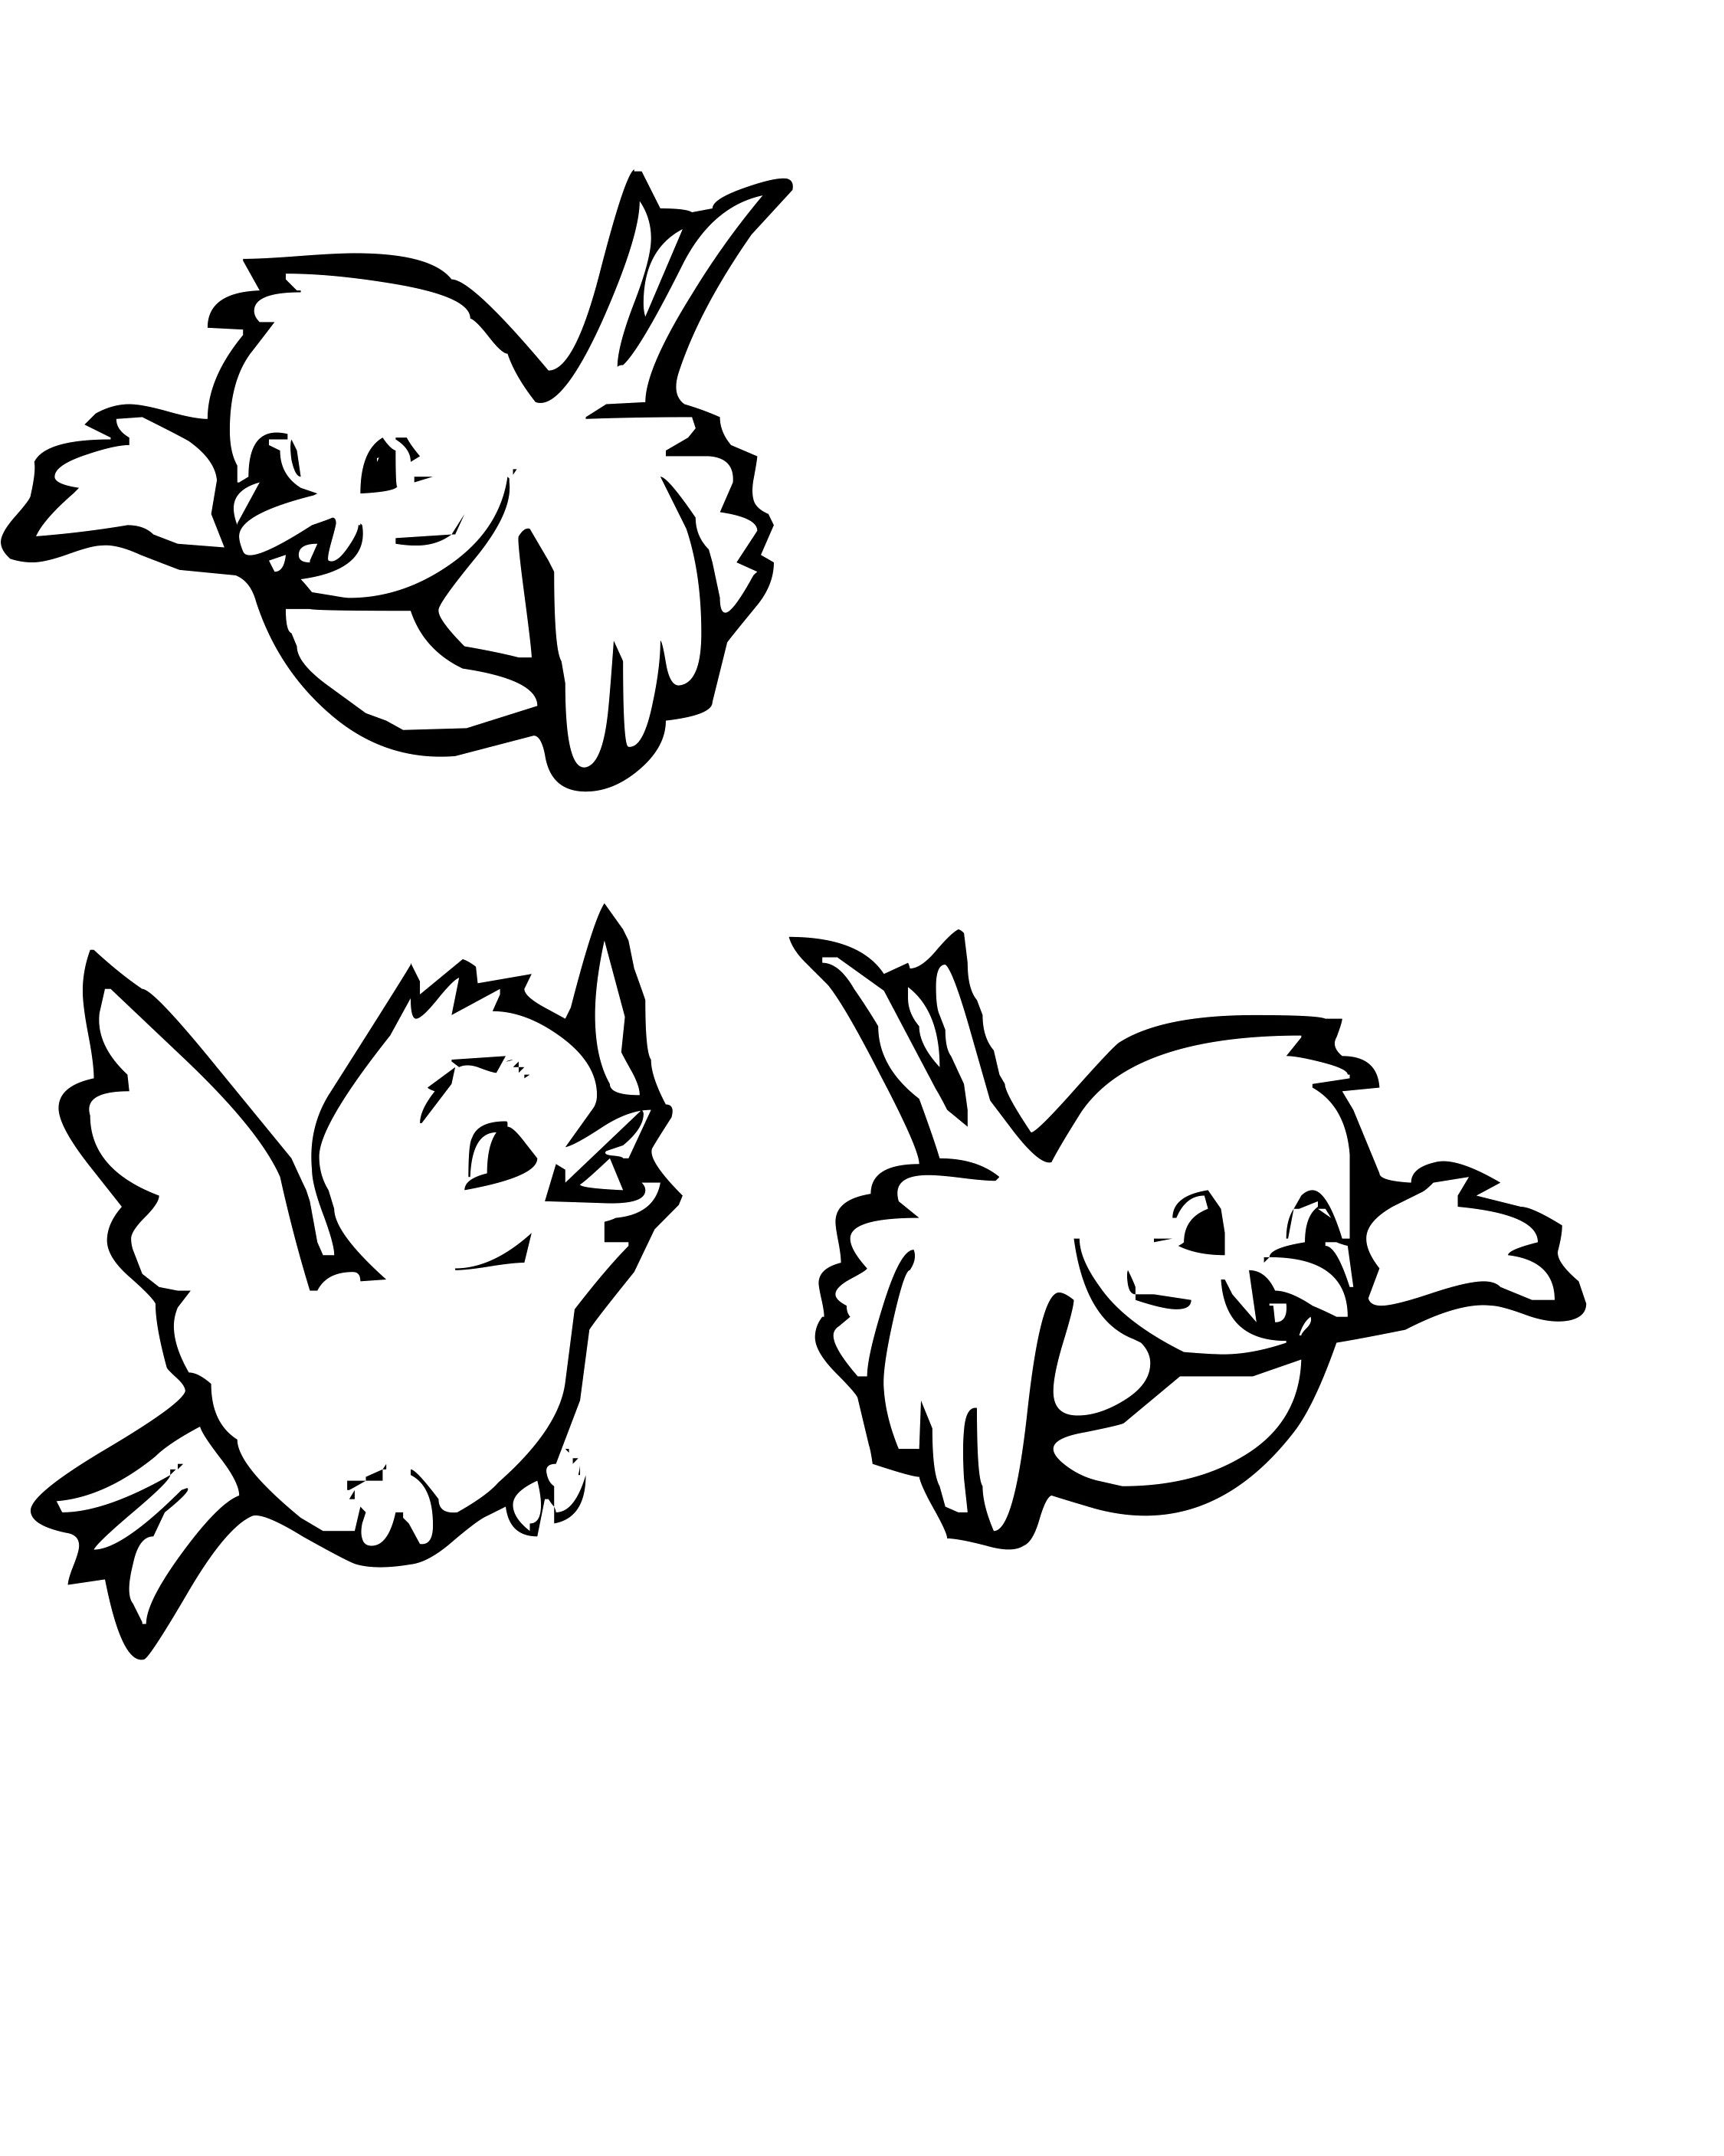 Three Cute Birds Coloring Pages Animal Coloring Pages Bird Coloring Pages Unicorn Coloring Pages